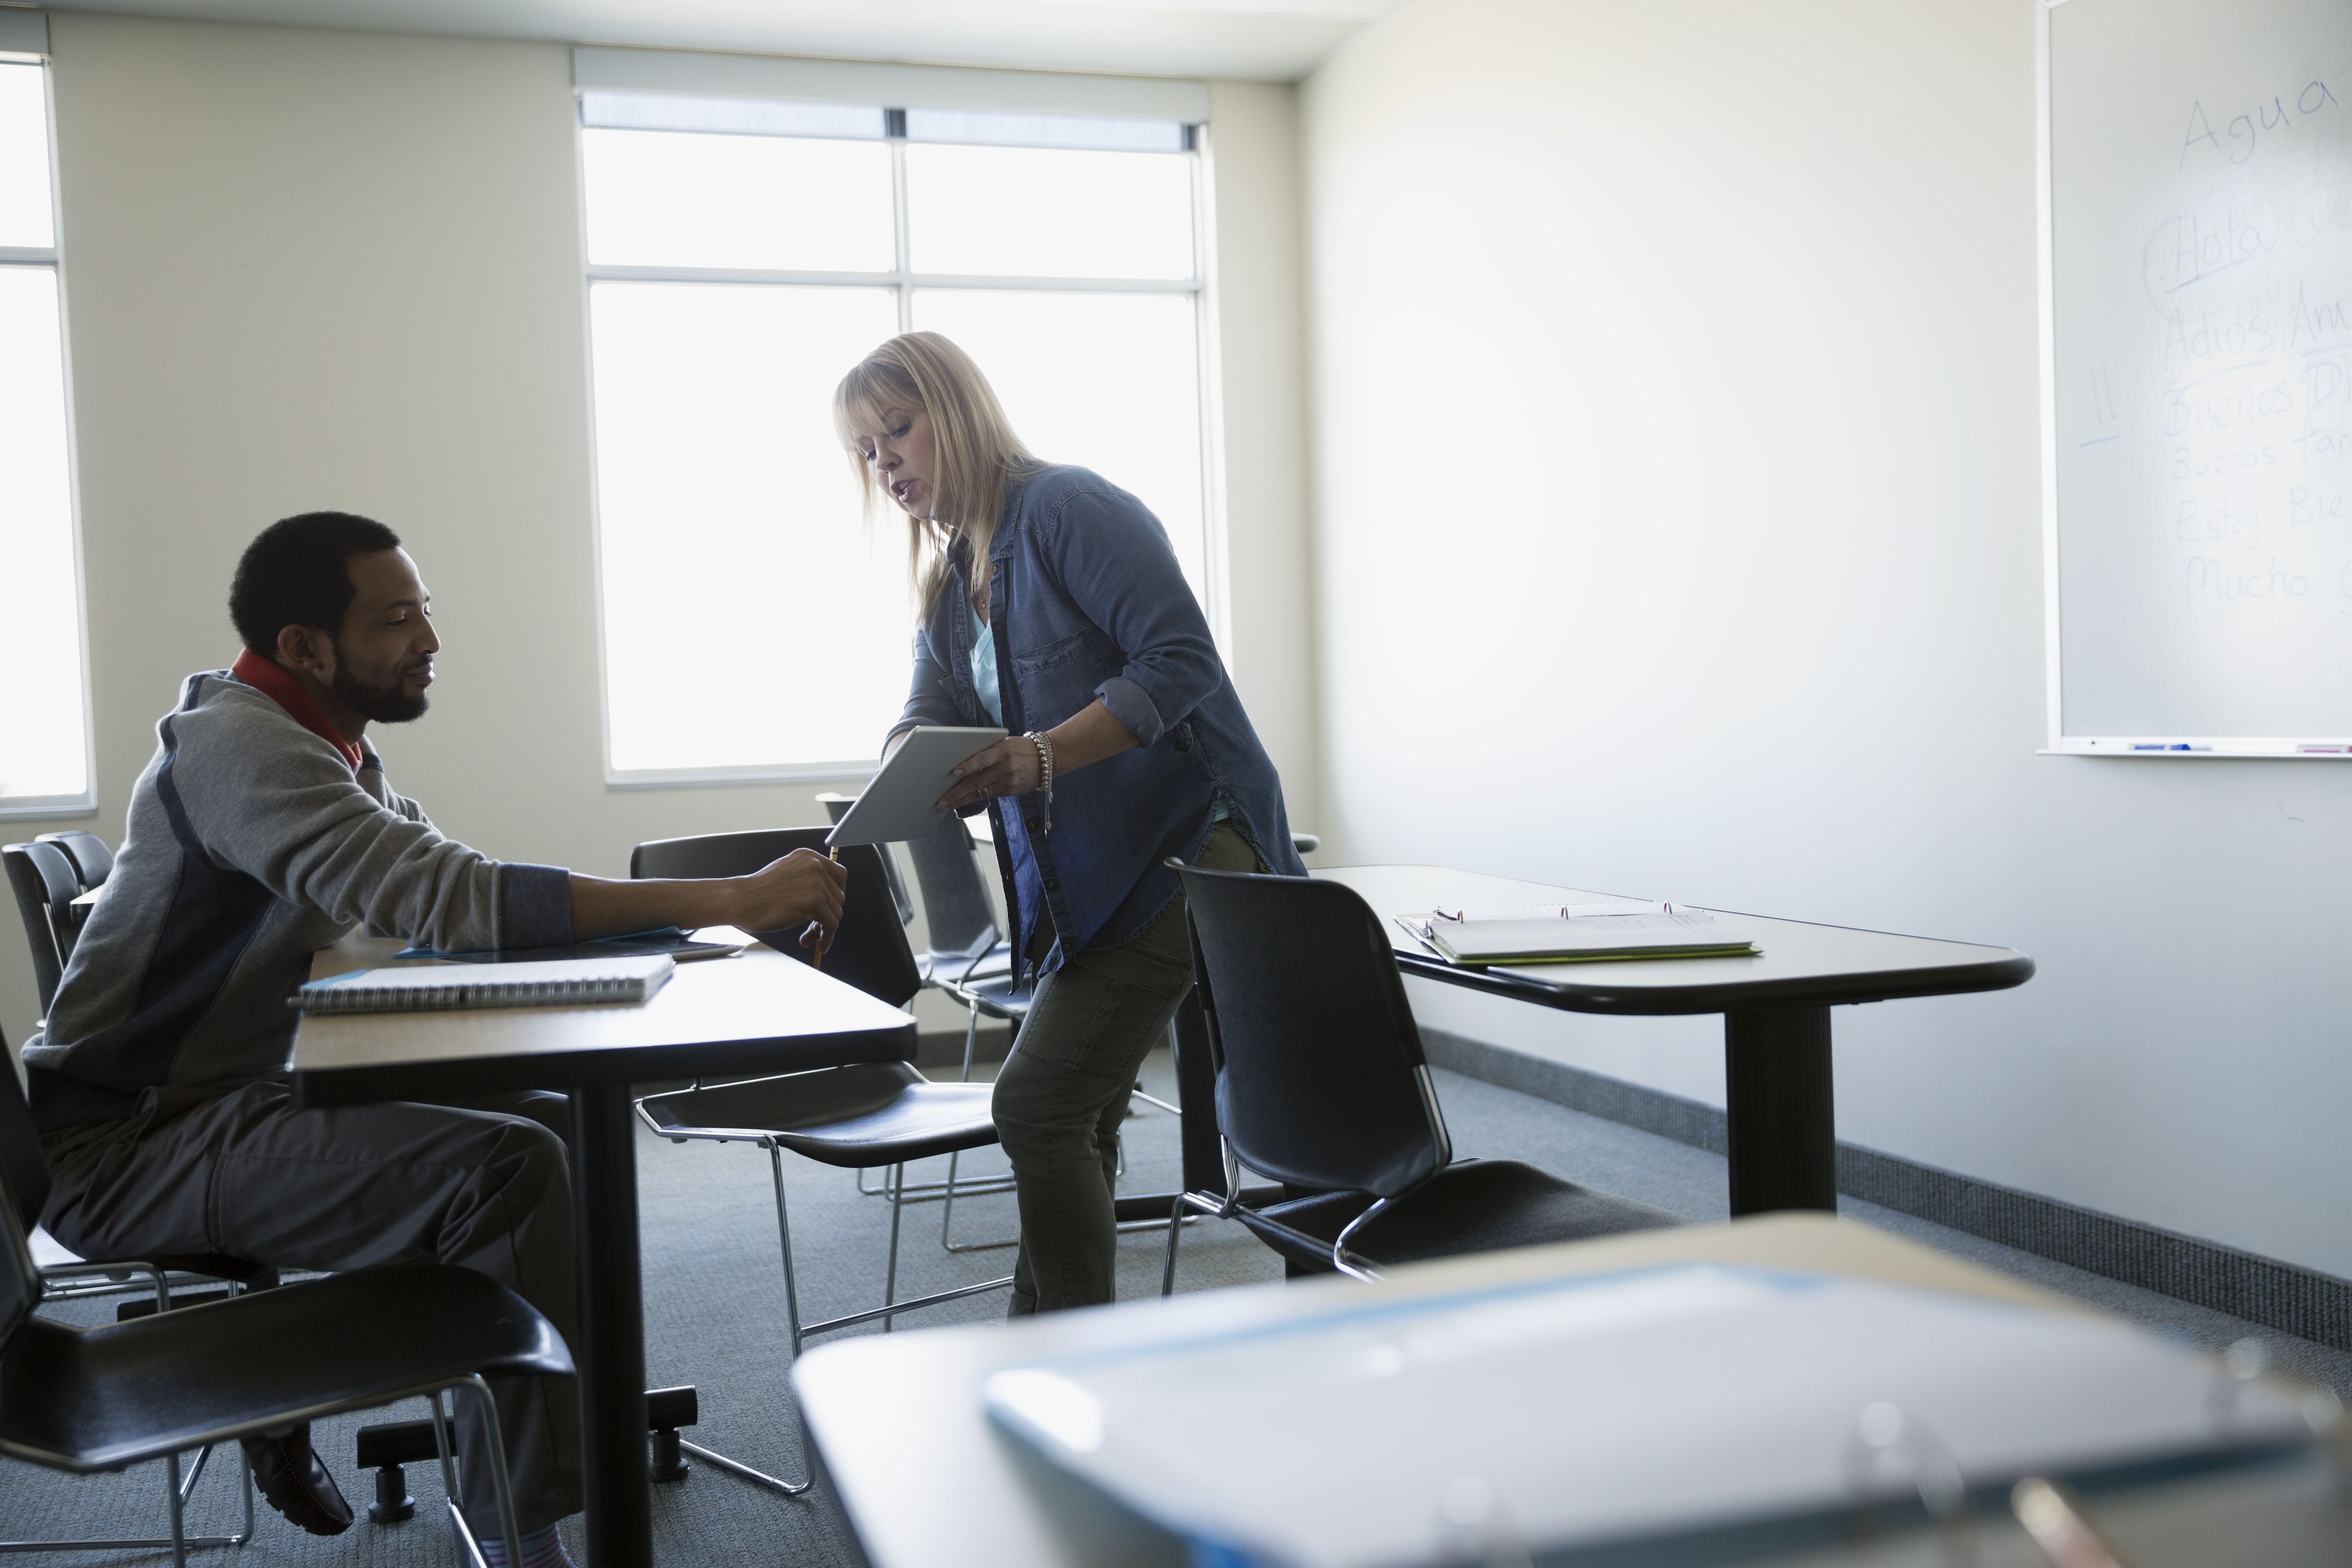 Professor with digital tablet helping adult education student in classroom